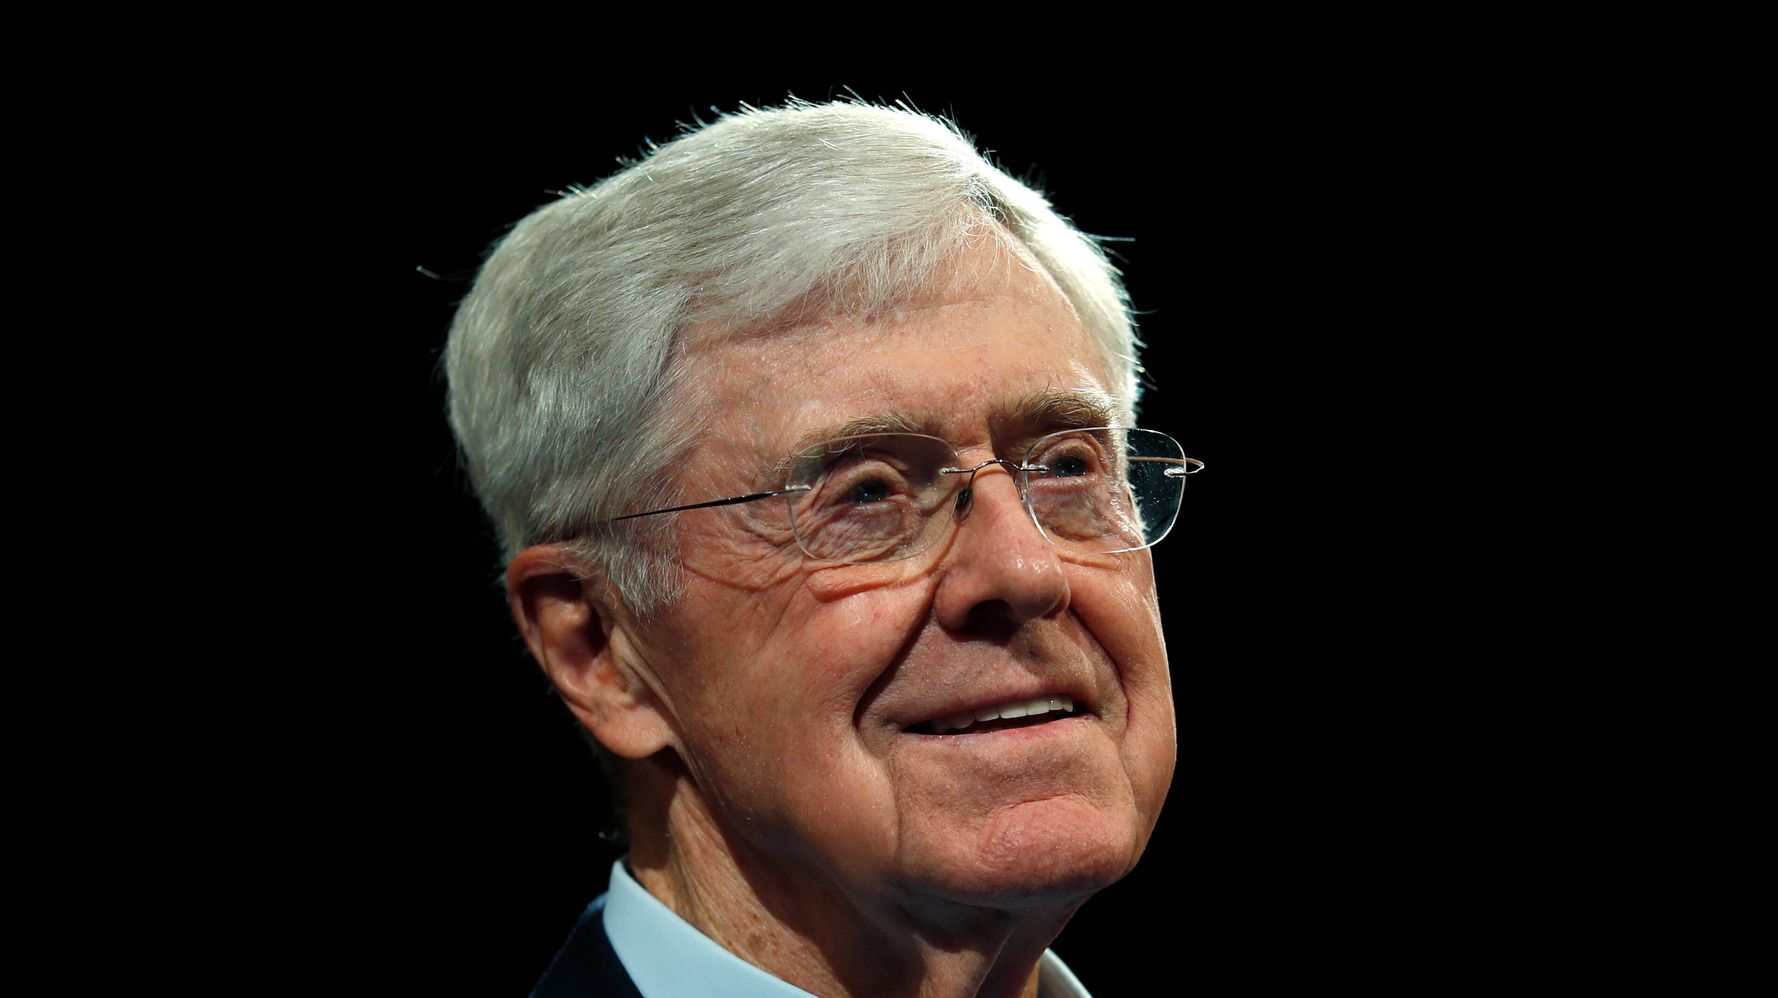 After Pouring Gasoline On U.S. Divide, Charles Koch Now Claims He Wants To Heal Nation